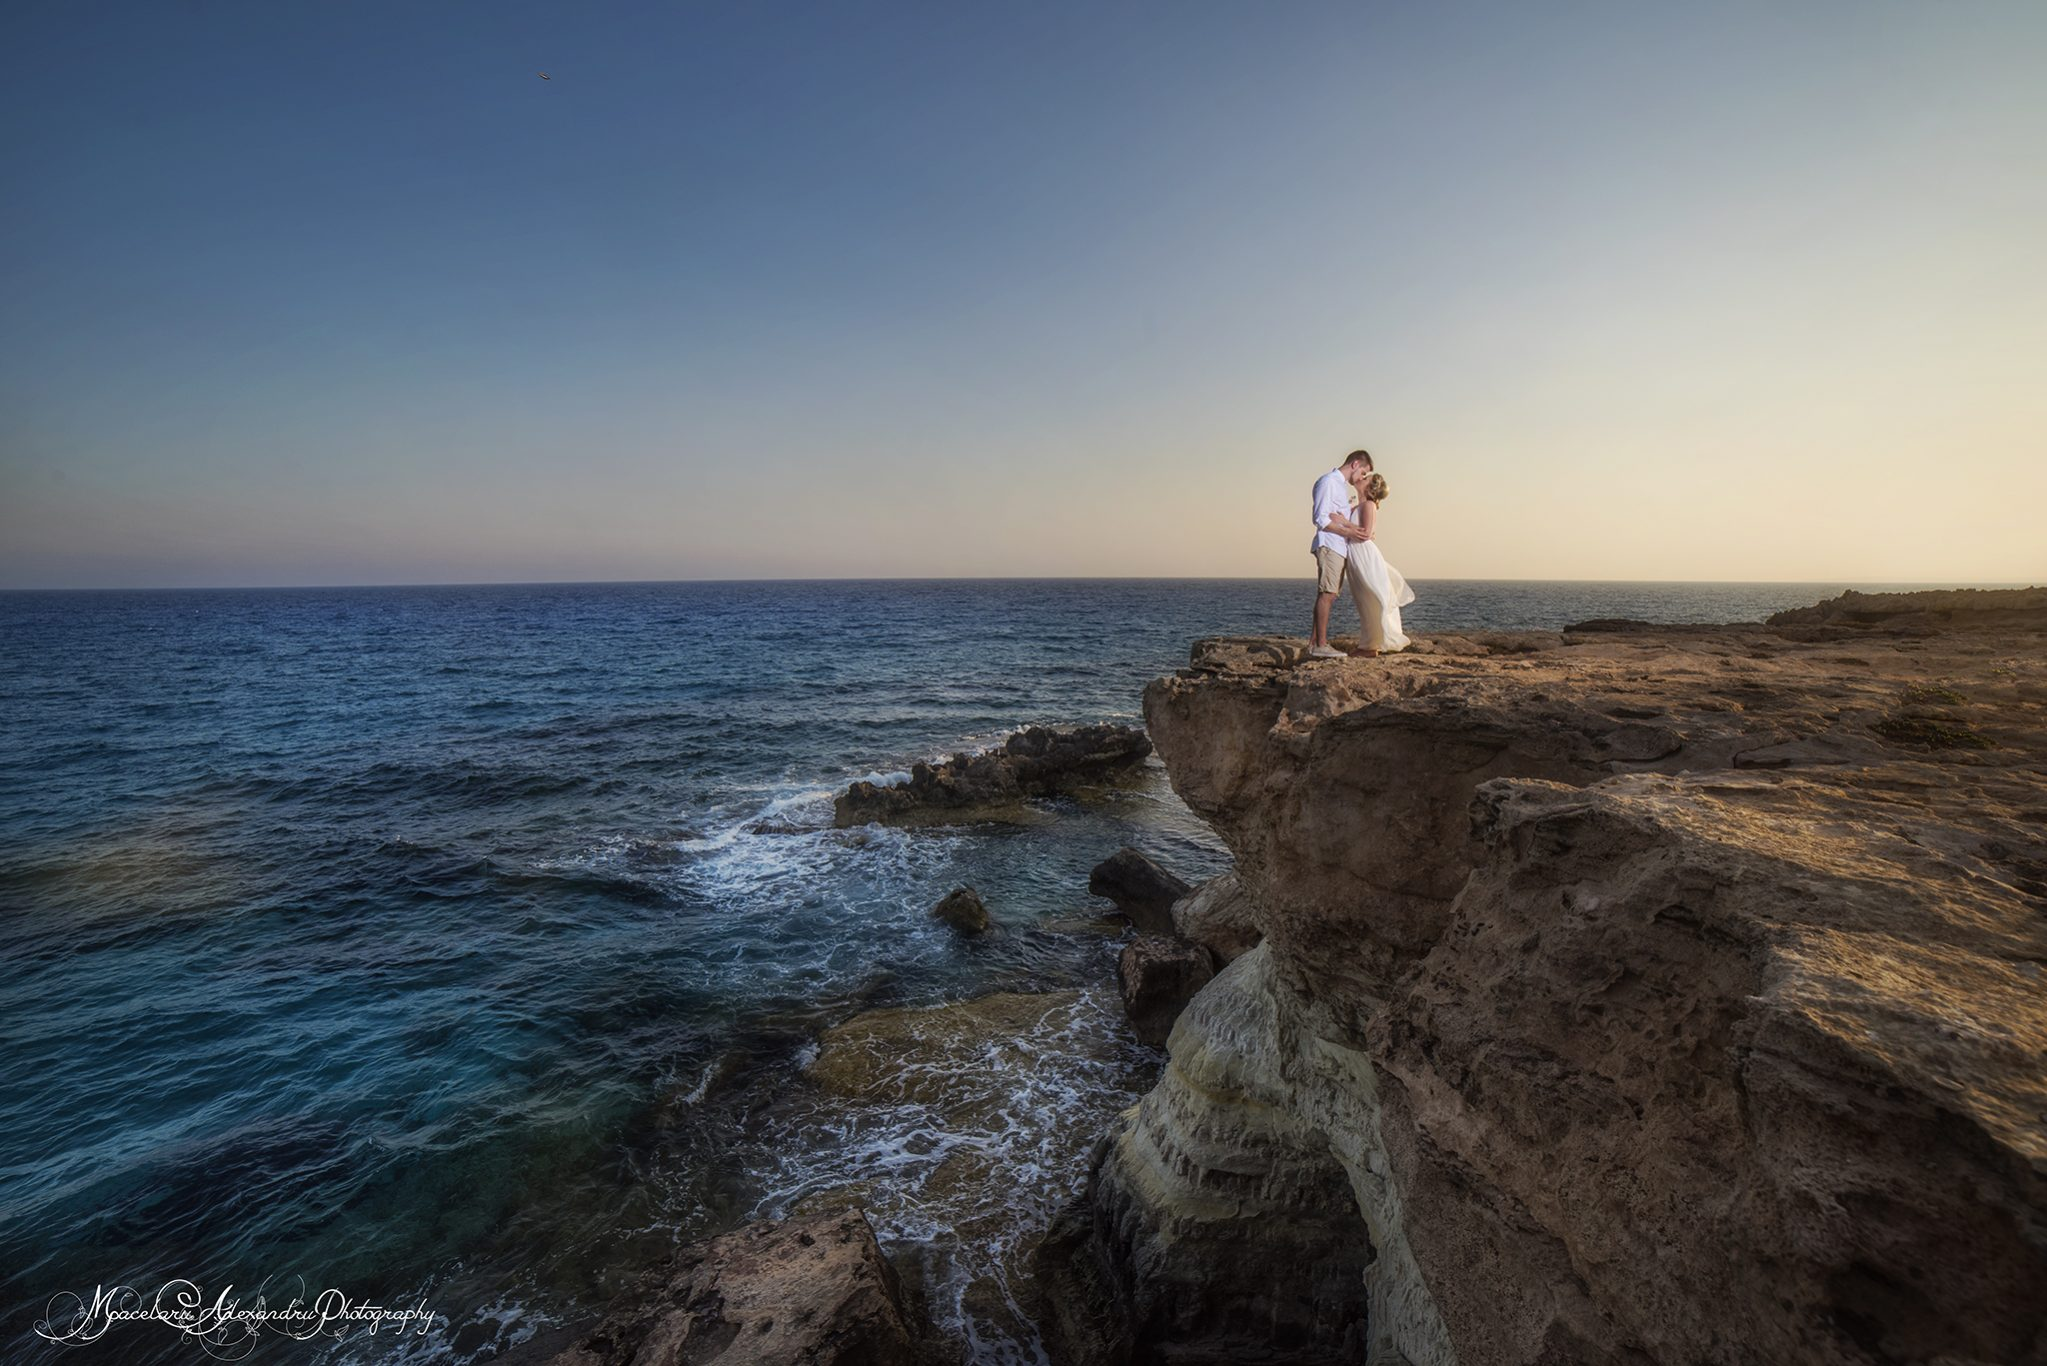 Wedding photographer in Cyprus - Alexandru Macelaru